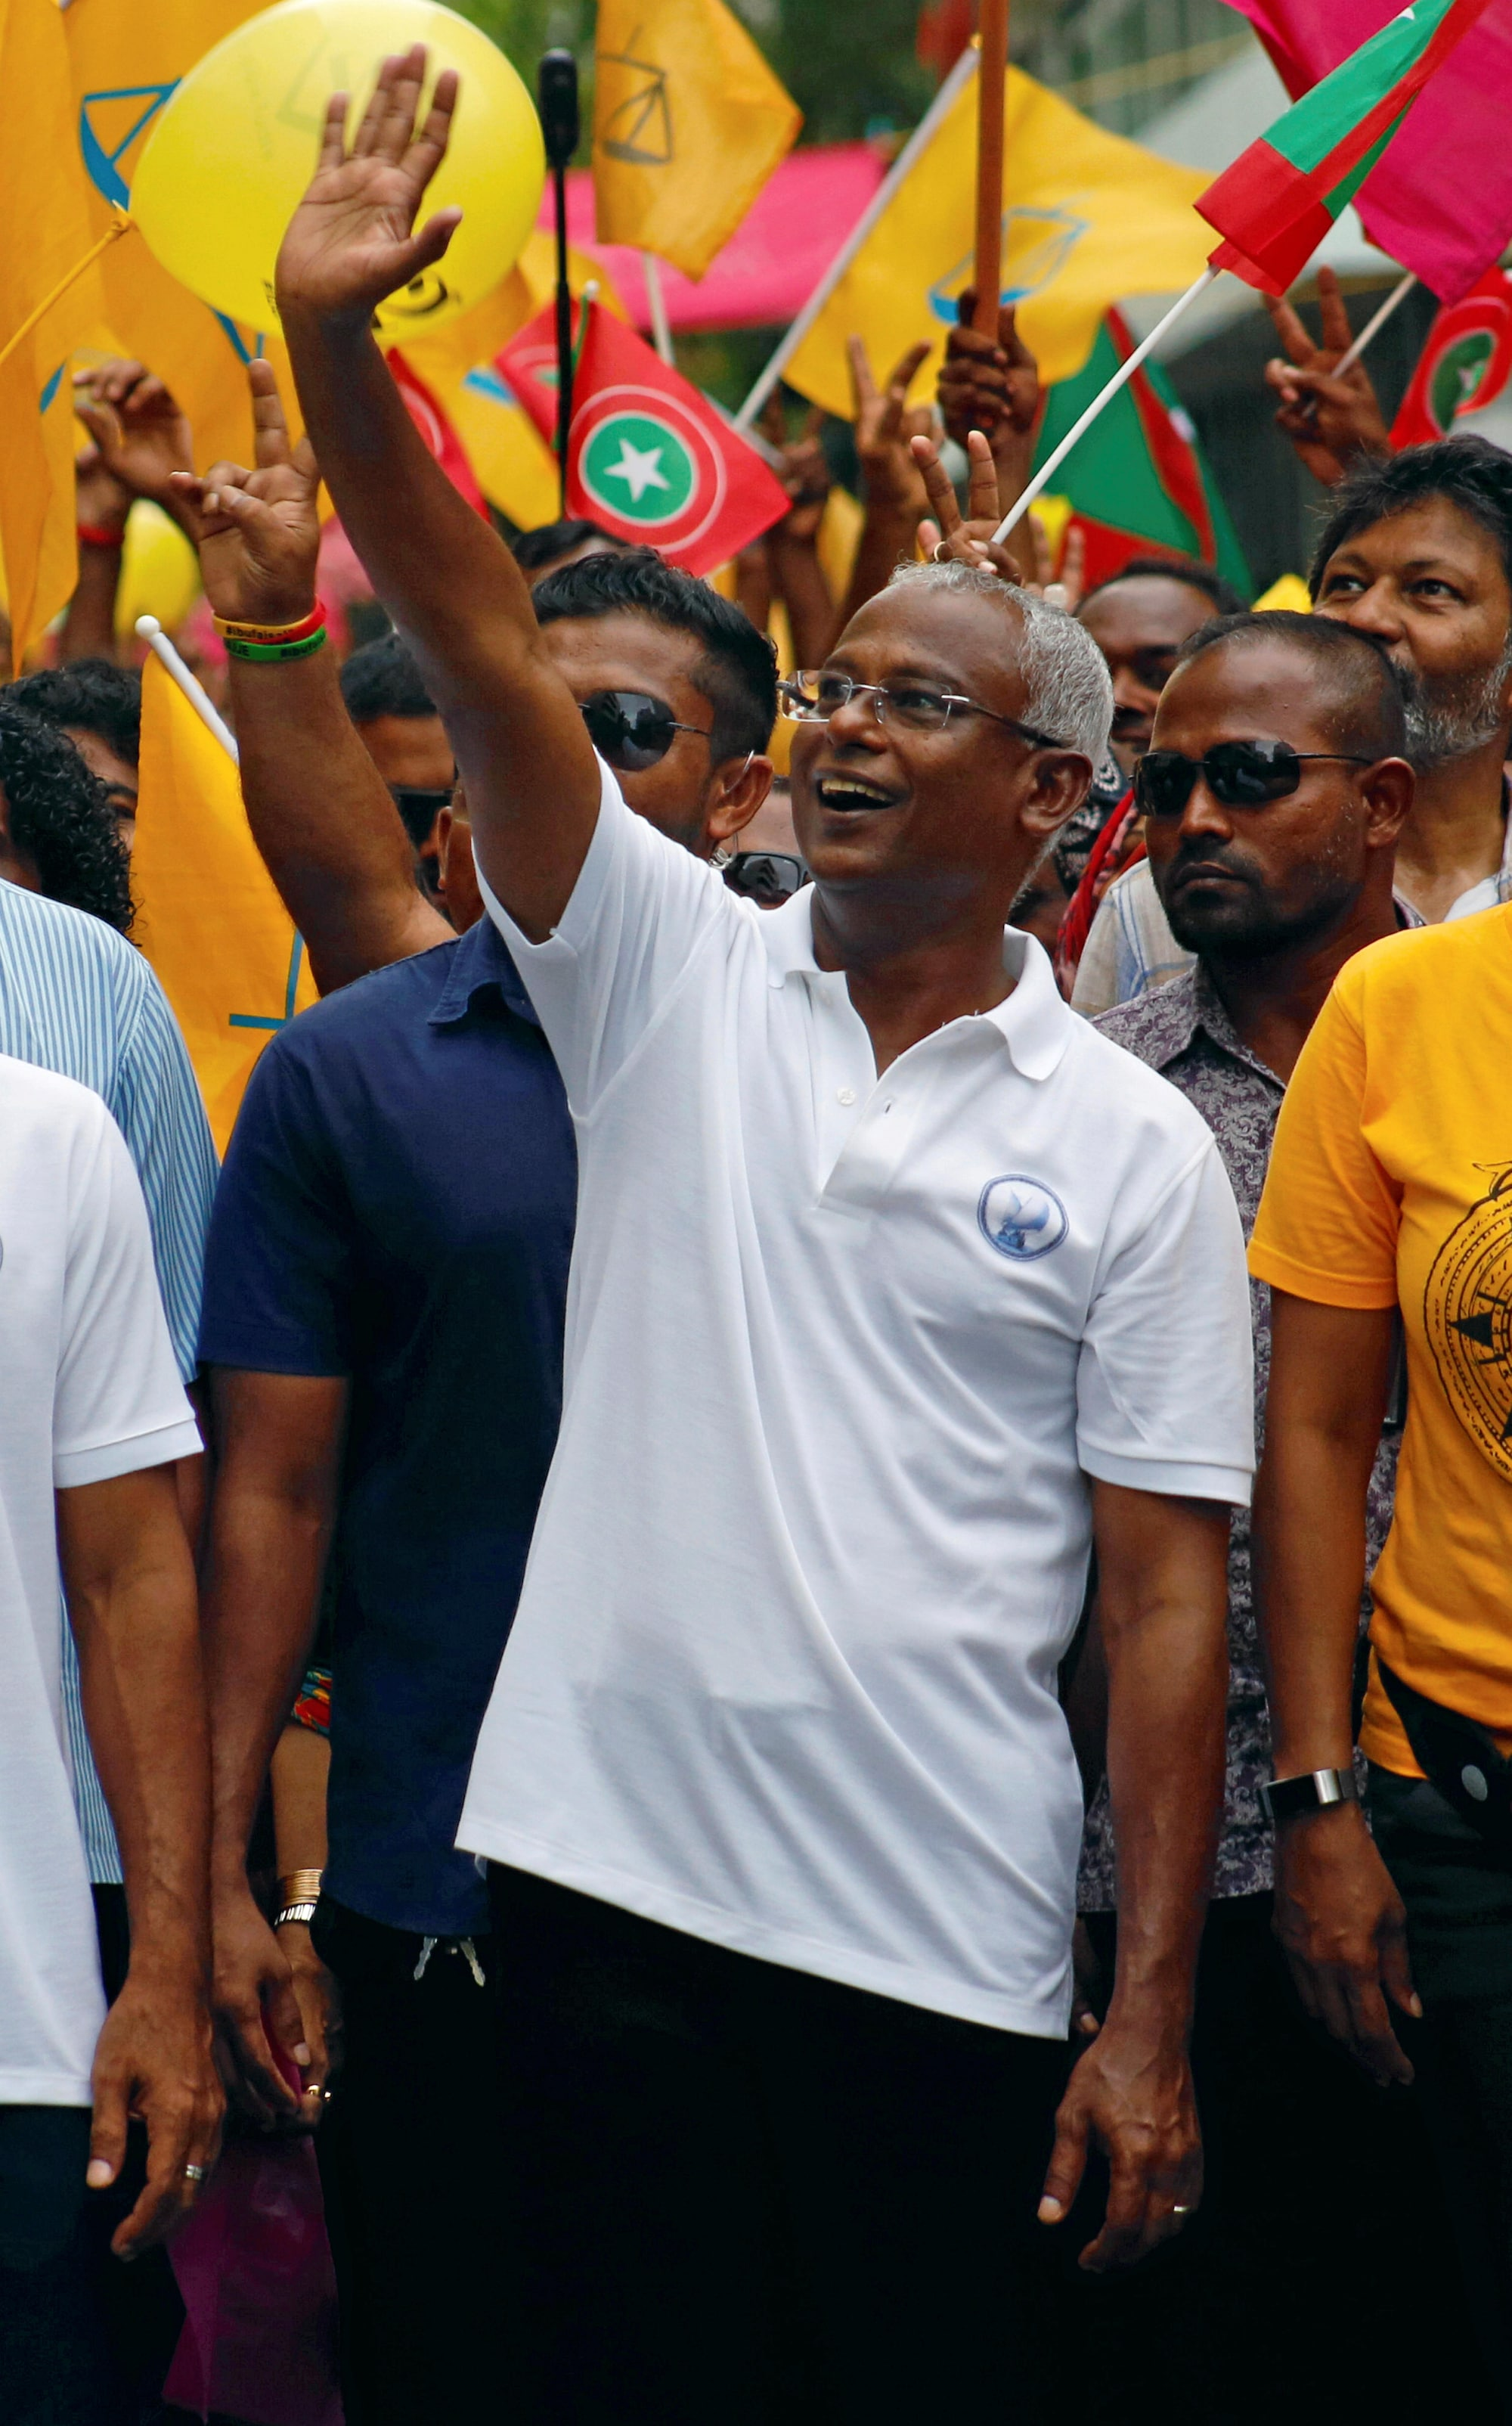 Opposition candidate takes early lead in Maldives Presidential election